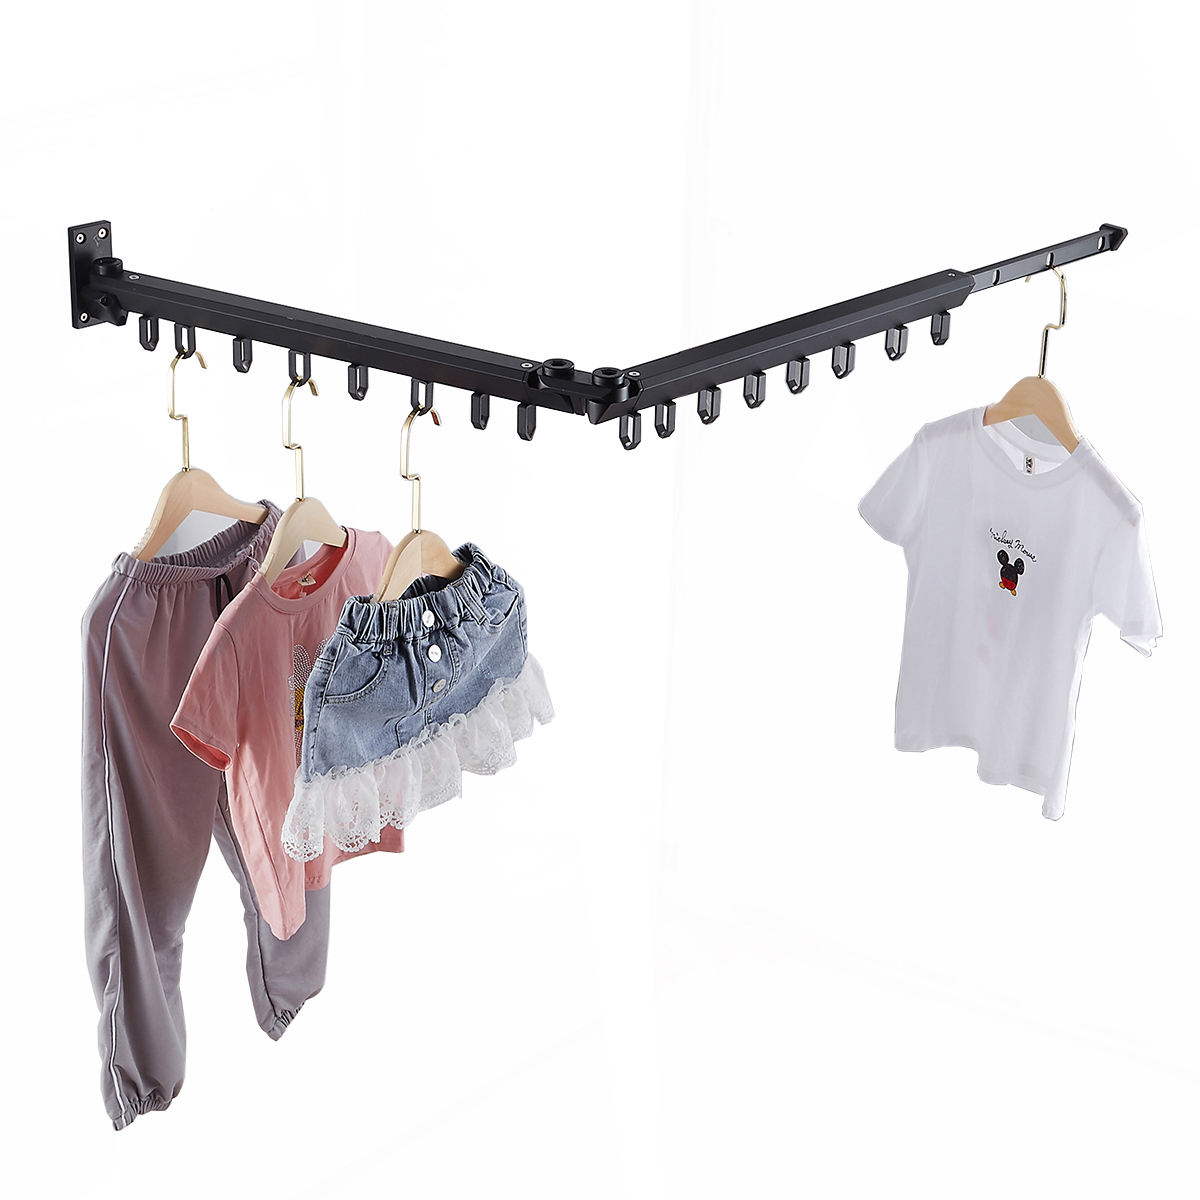 Aluminum Alloy Wall Mount Balcony Folding Telescopic Clothes Drying Rack Retractable Clothes Dryer Rack